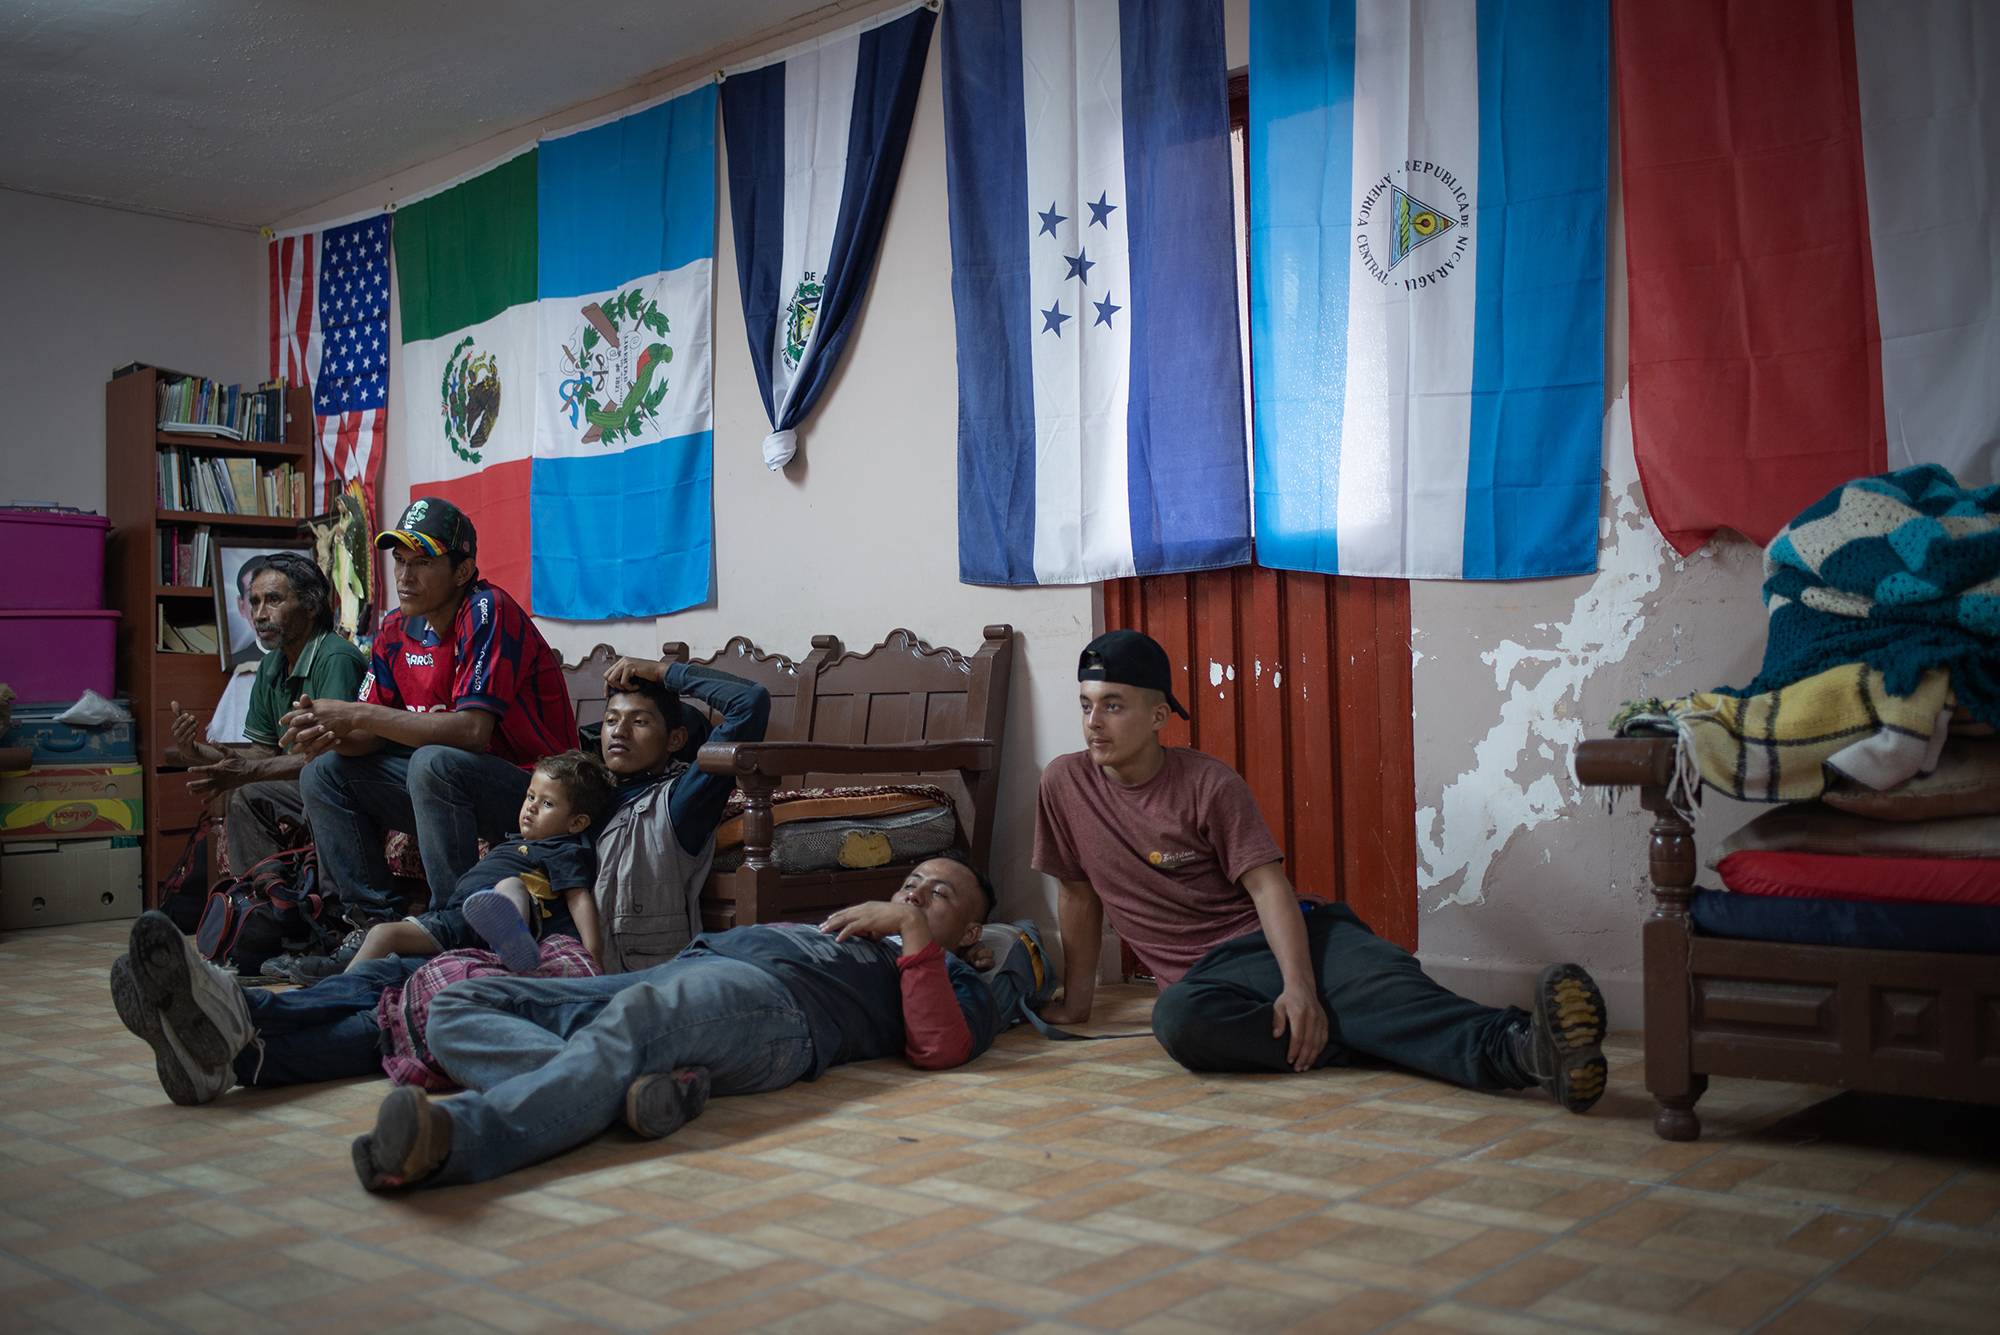 """A group of migrants hangs out and watches TV at """"Casa del Migrante Frontera Digna"""" created by priest Jose Guadalupe Valdes Alvarado. """"Casa del Migrante Frontera Digna"""" was created to provide lodging for migrants from different countries who arrive after long journeys that last several months to cross into the United States. Immigrants can spend three nights in the shelter where they are offered beds, food, hygiene items and a space to regain strength. Piedras Negras, Coahuila, Mexico. June 21st, 2018. Photographer: Luján Agusti."""